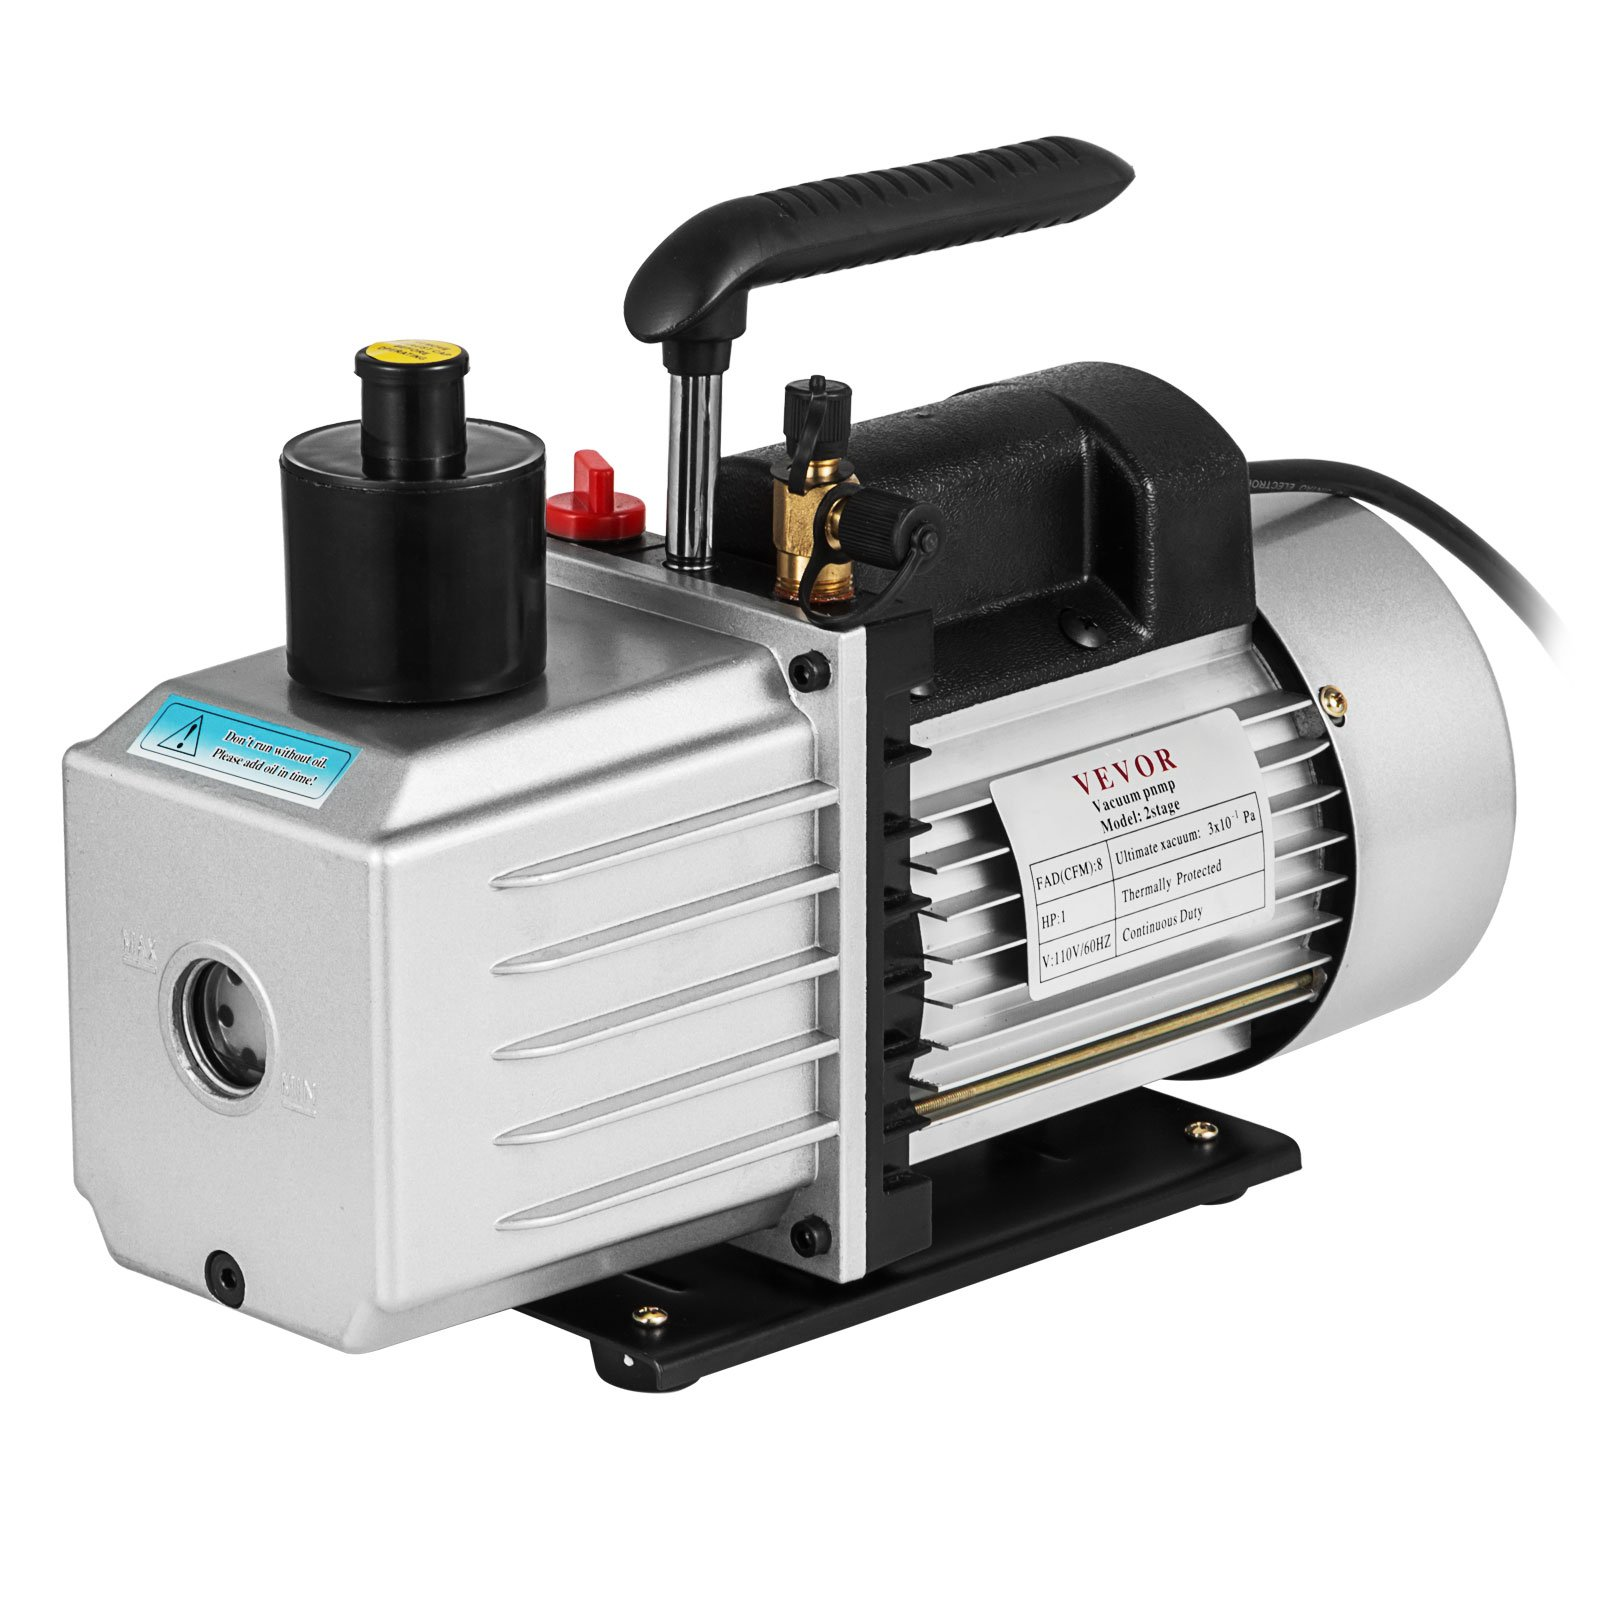 VEVOR Vacuum Pump 8CFM 1HP Two Stage HVAC Rotary Vane Vacuum Pump Wine Degassing Milking Medical Food Processing Air Conditioning Auto AC Refrigerant Vacuum Pump (2-Stage, 8CFM) by VEVOR (Image #1)